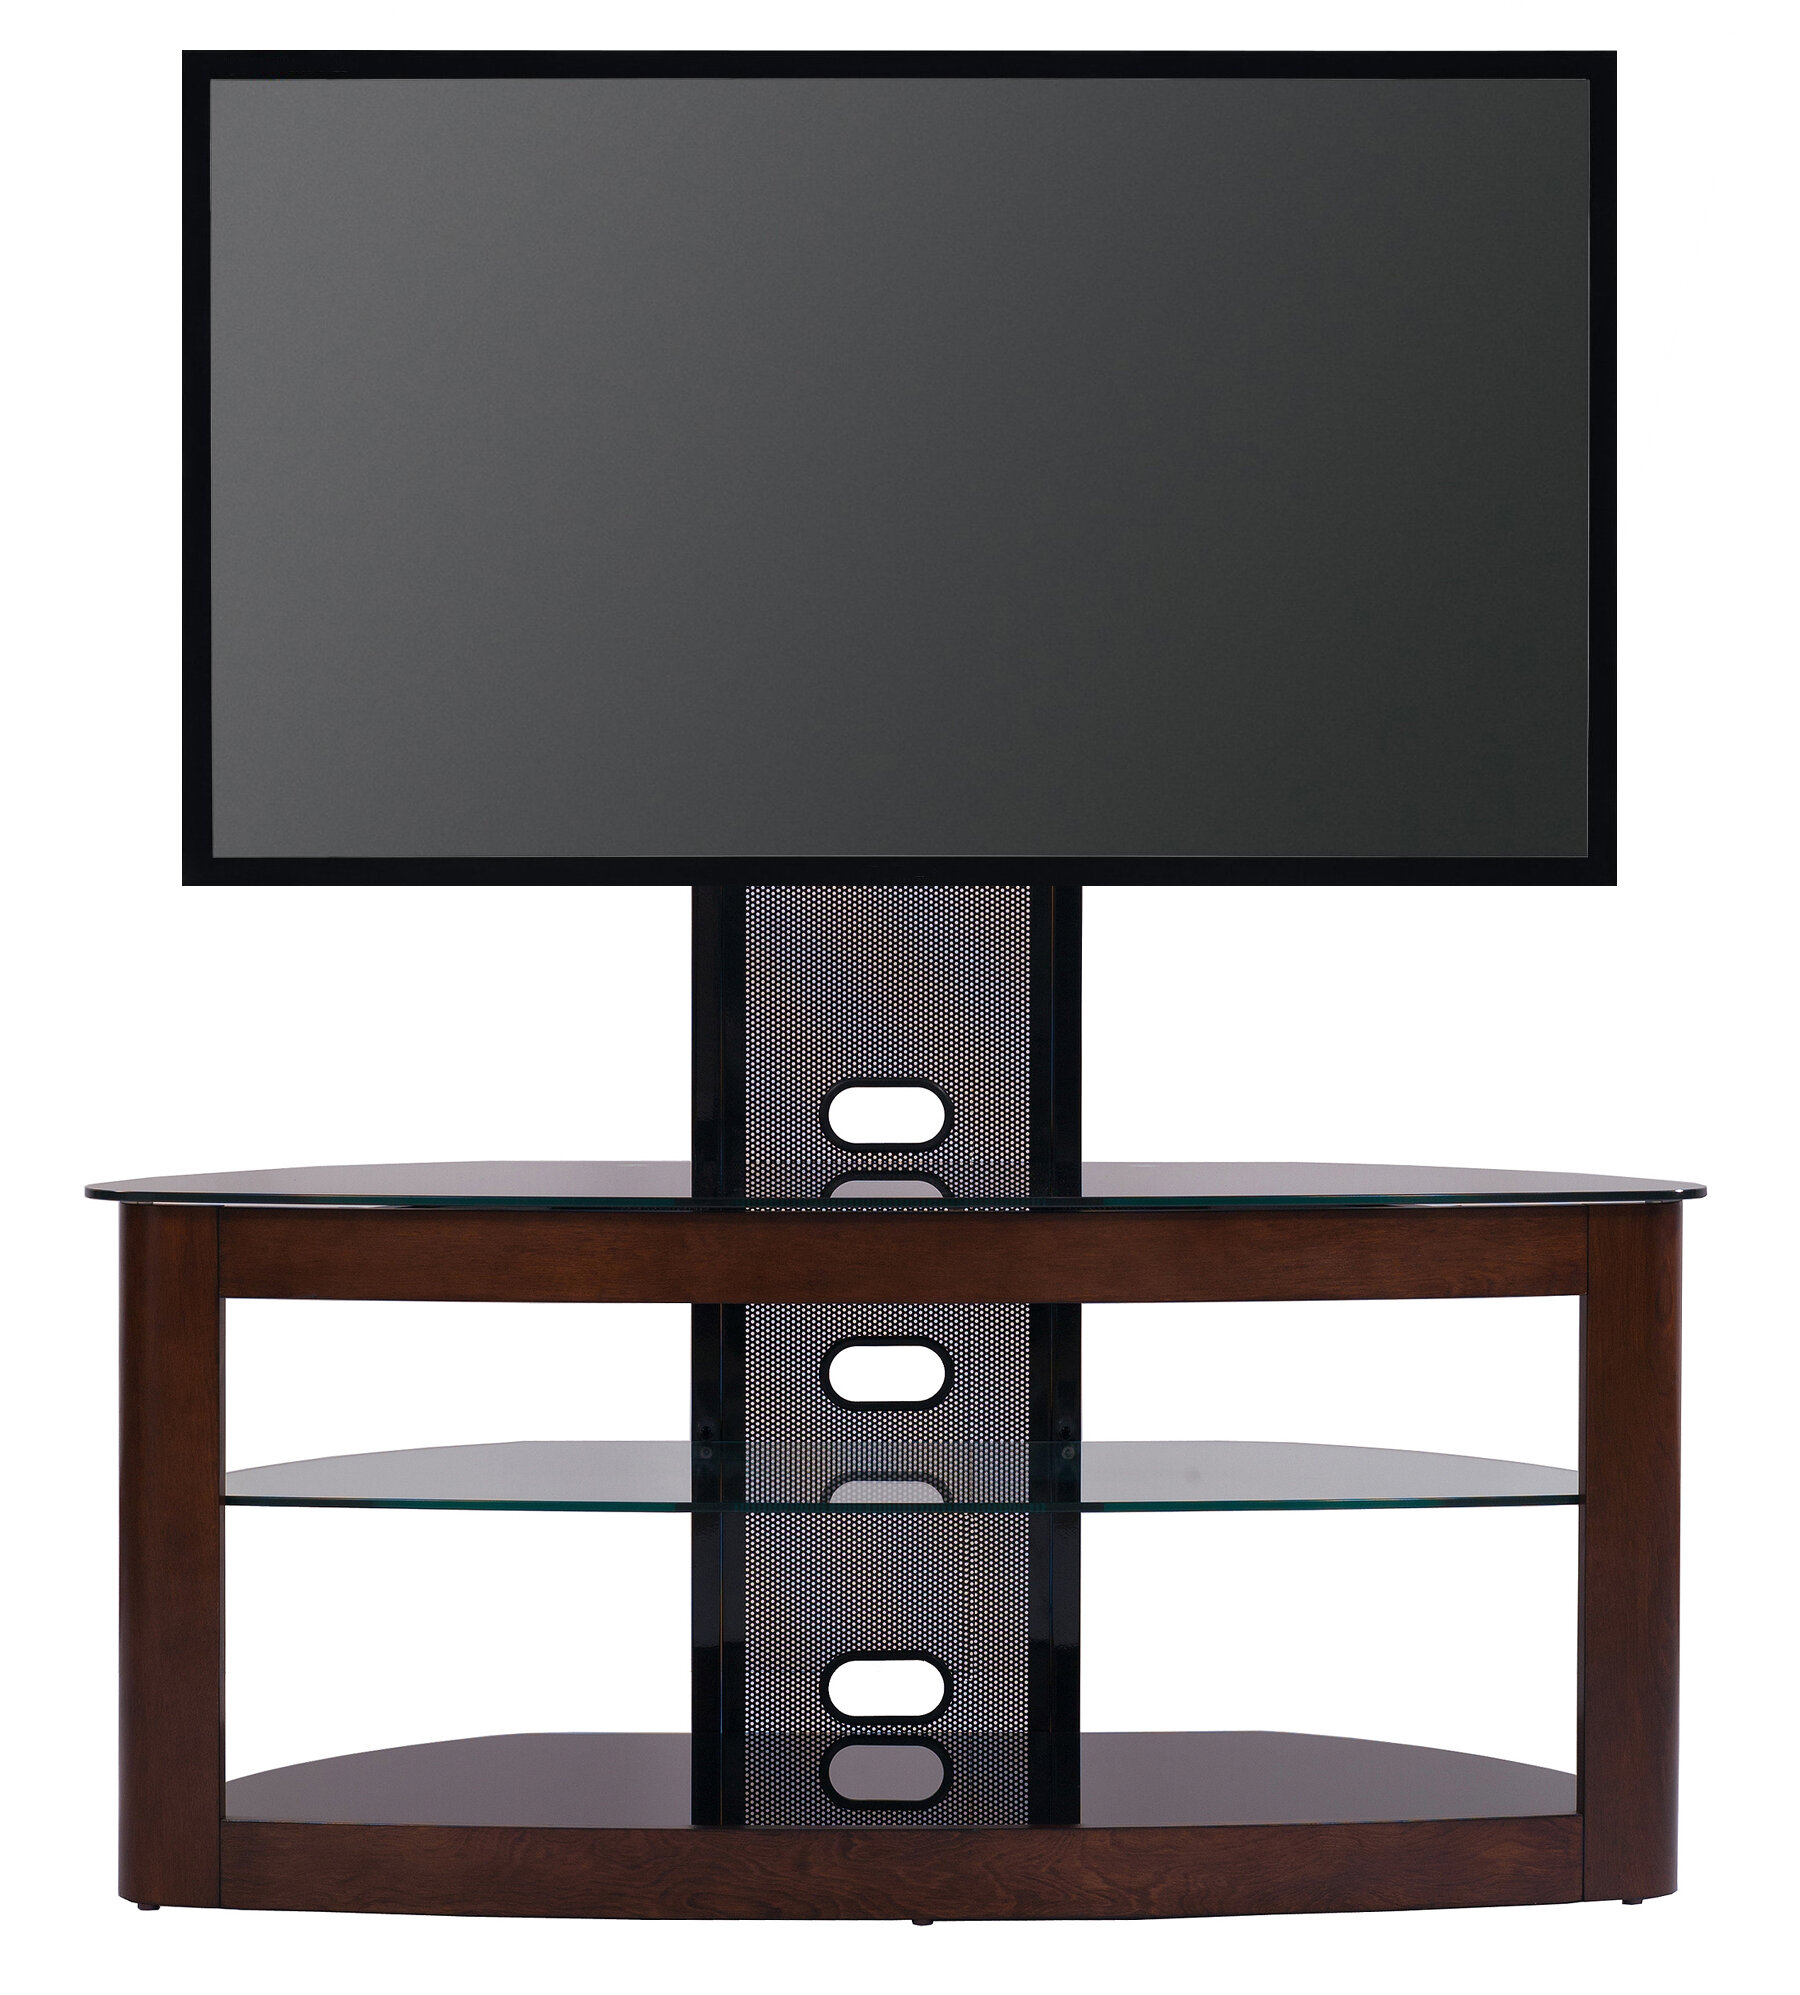 Flat Panel Mount Tv Stands Youll Love Wayfair Multi Room Distribution System On Wall Wiring Diagram Stand For Tvs Up To 78